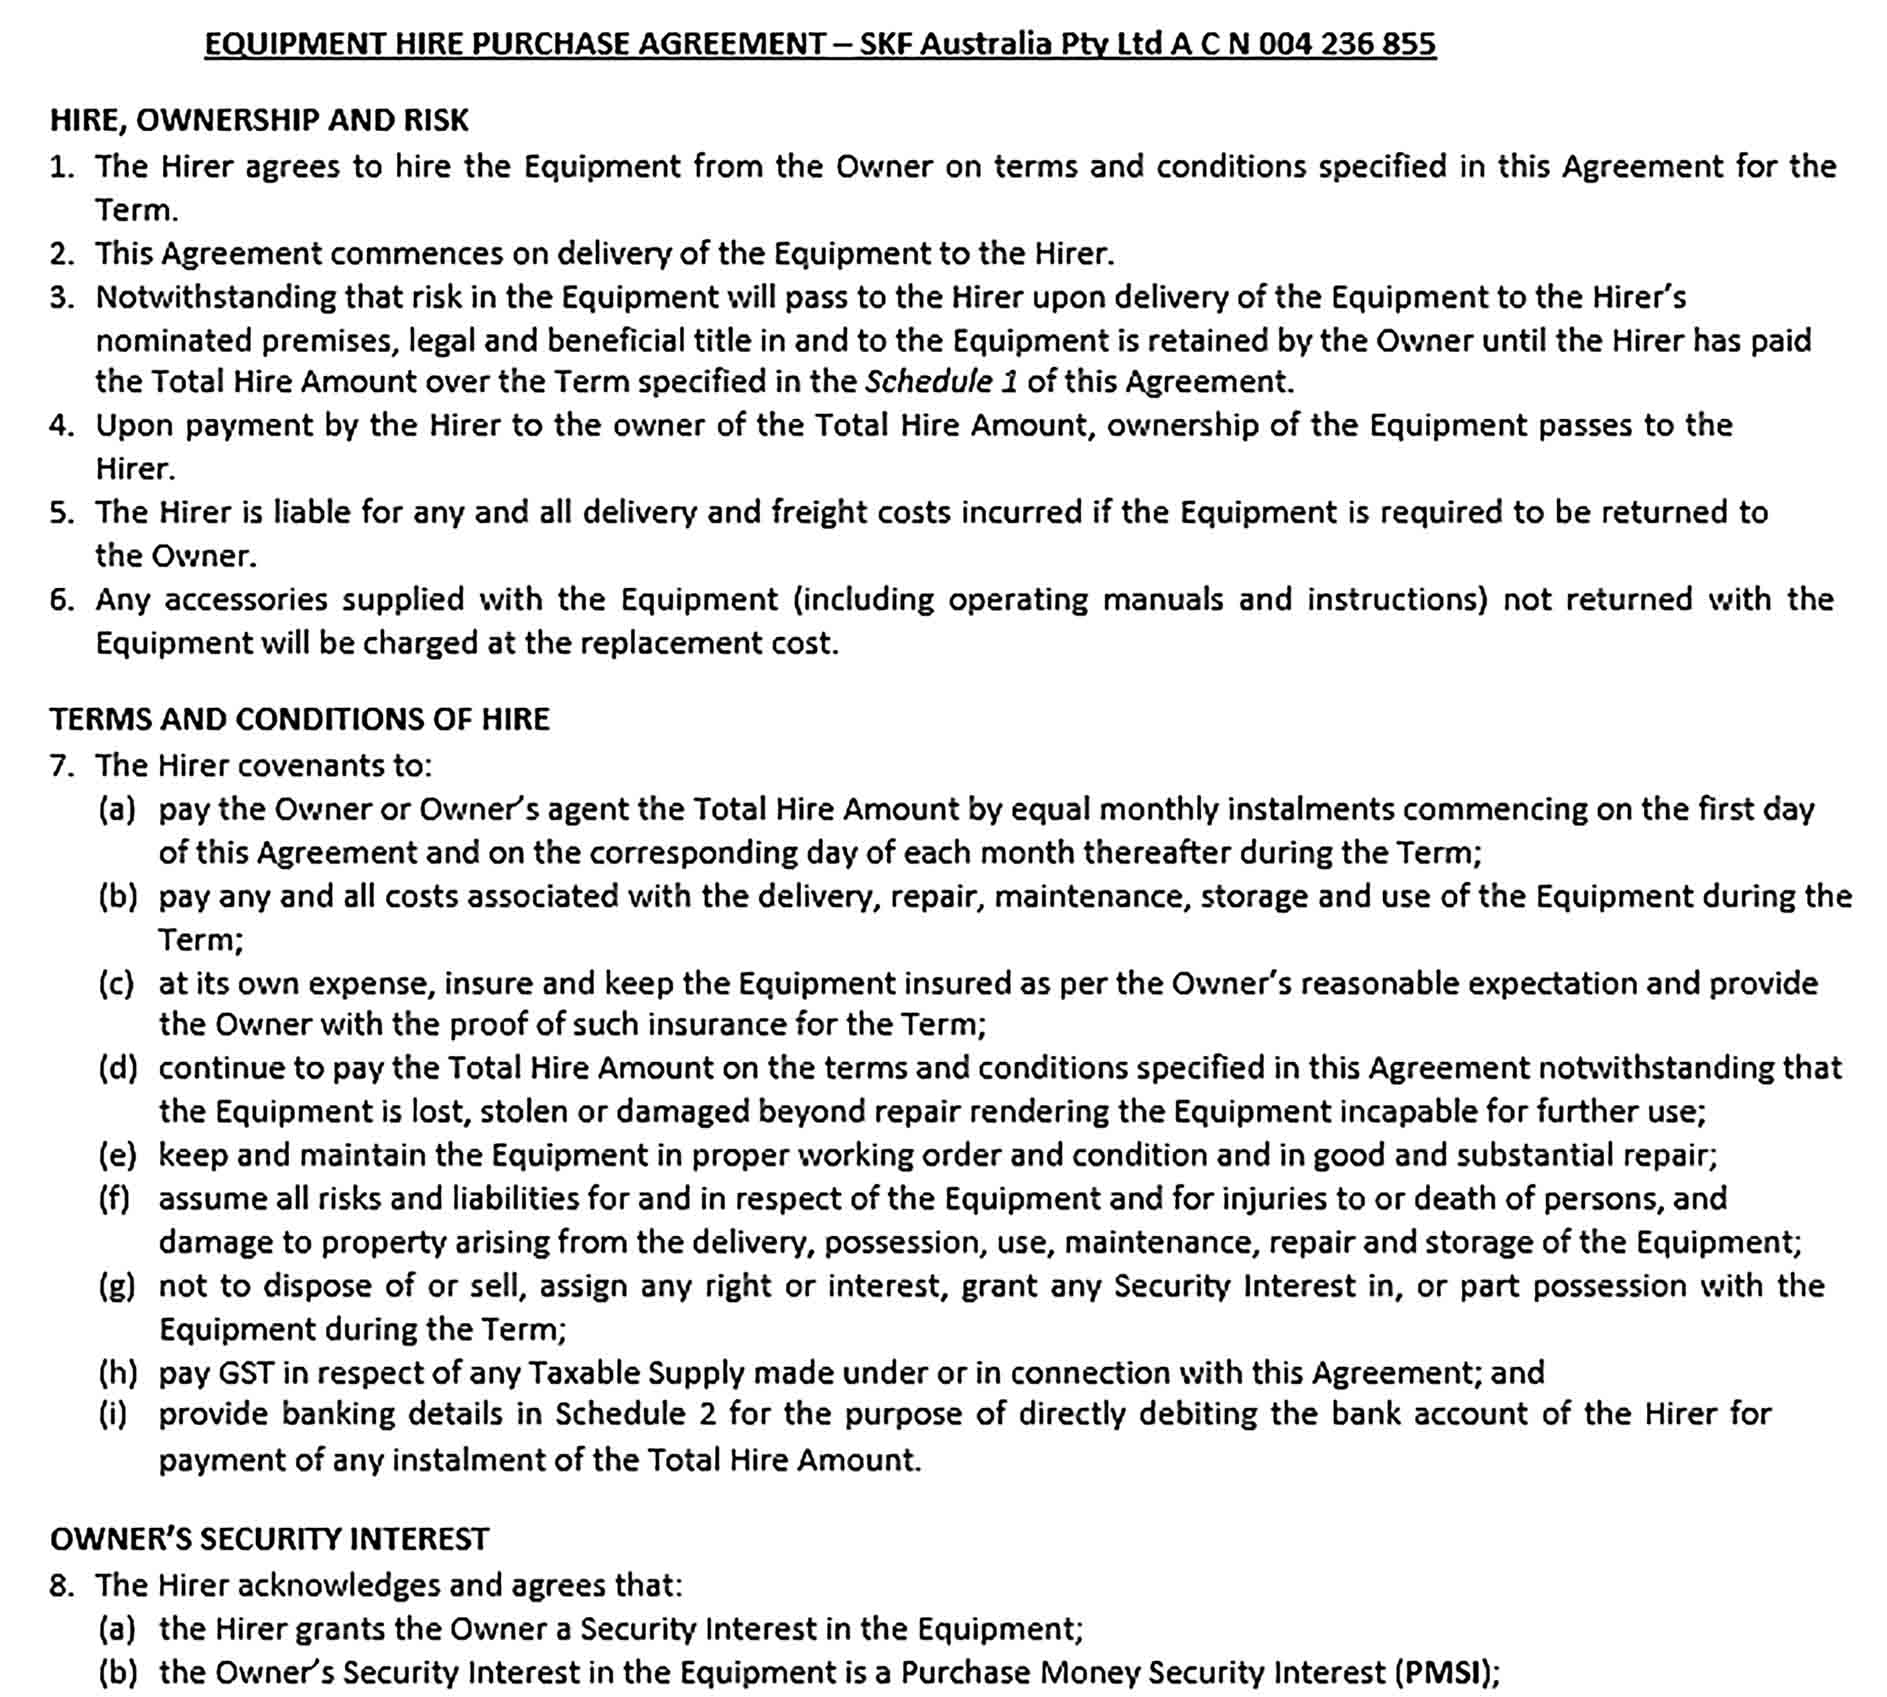 Sample Equipment Hire Purchase Agreement